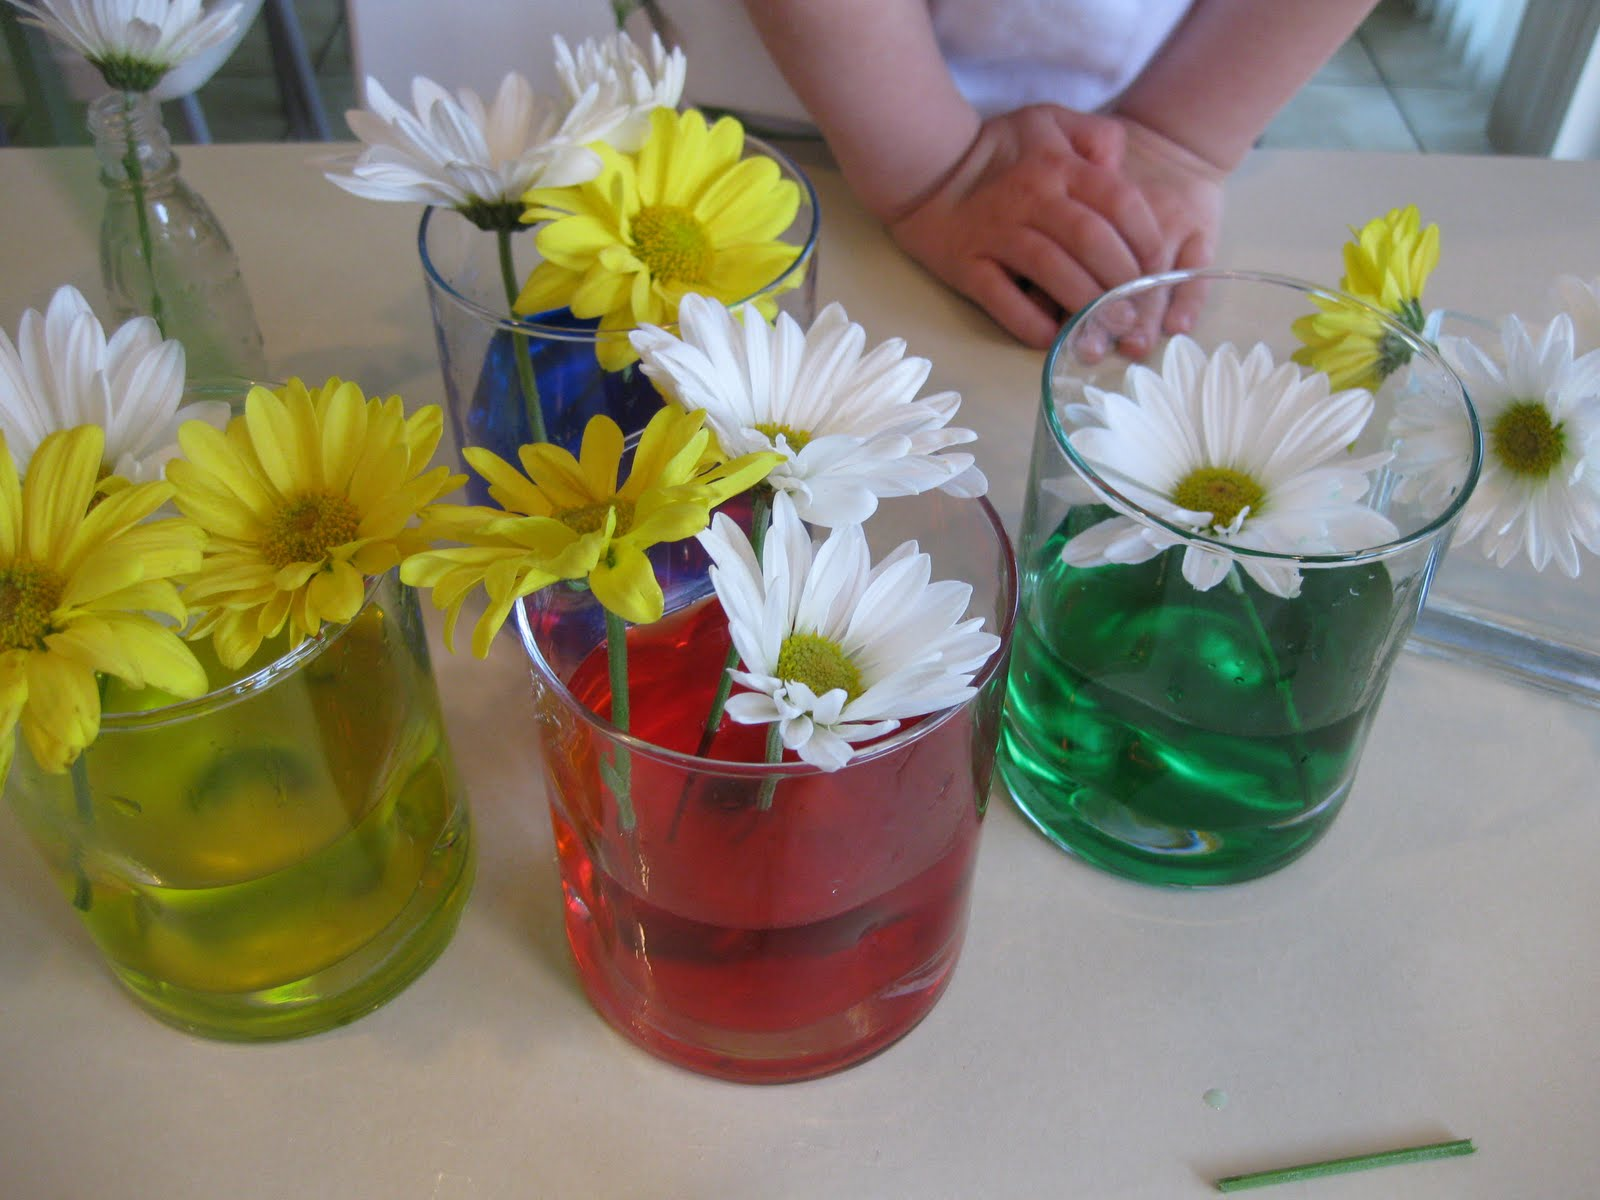 Flowers and colors coloring flowers teach mama for How to dye flowers using food coloring